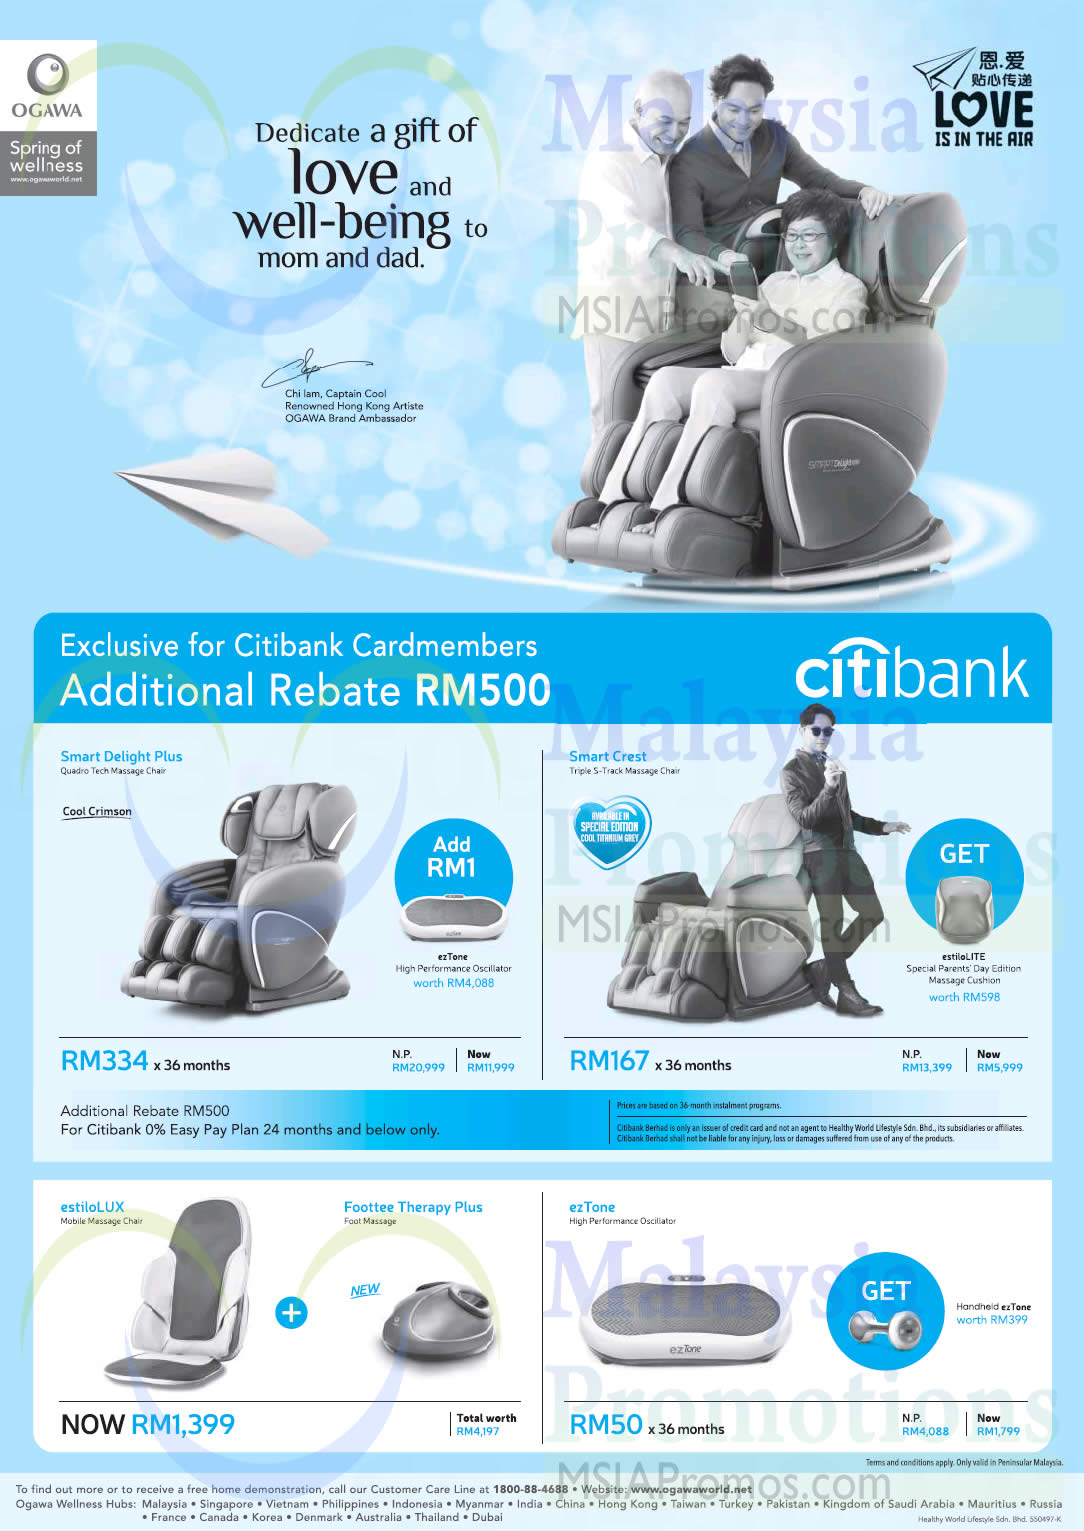 ogawa smart delight plus massage chair tagged posts aug 2018